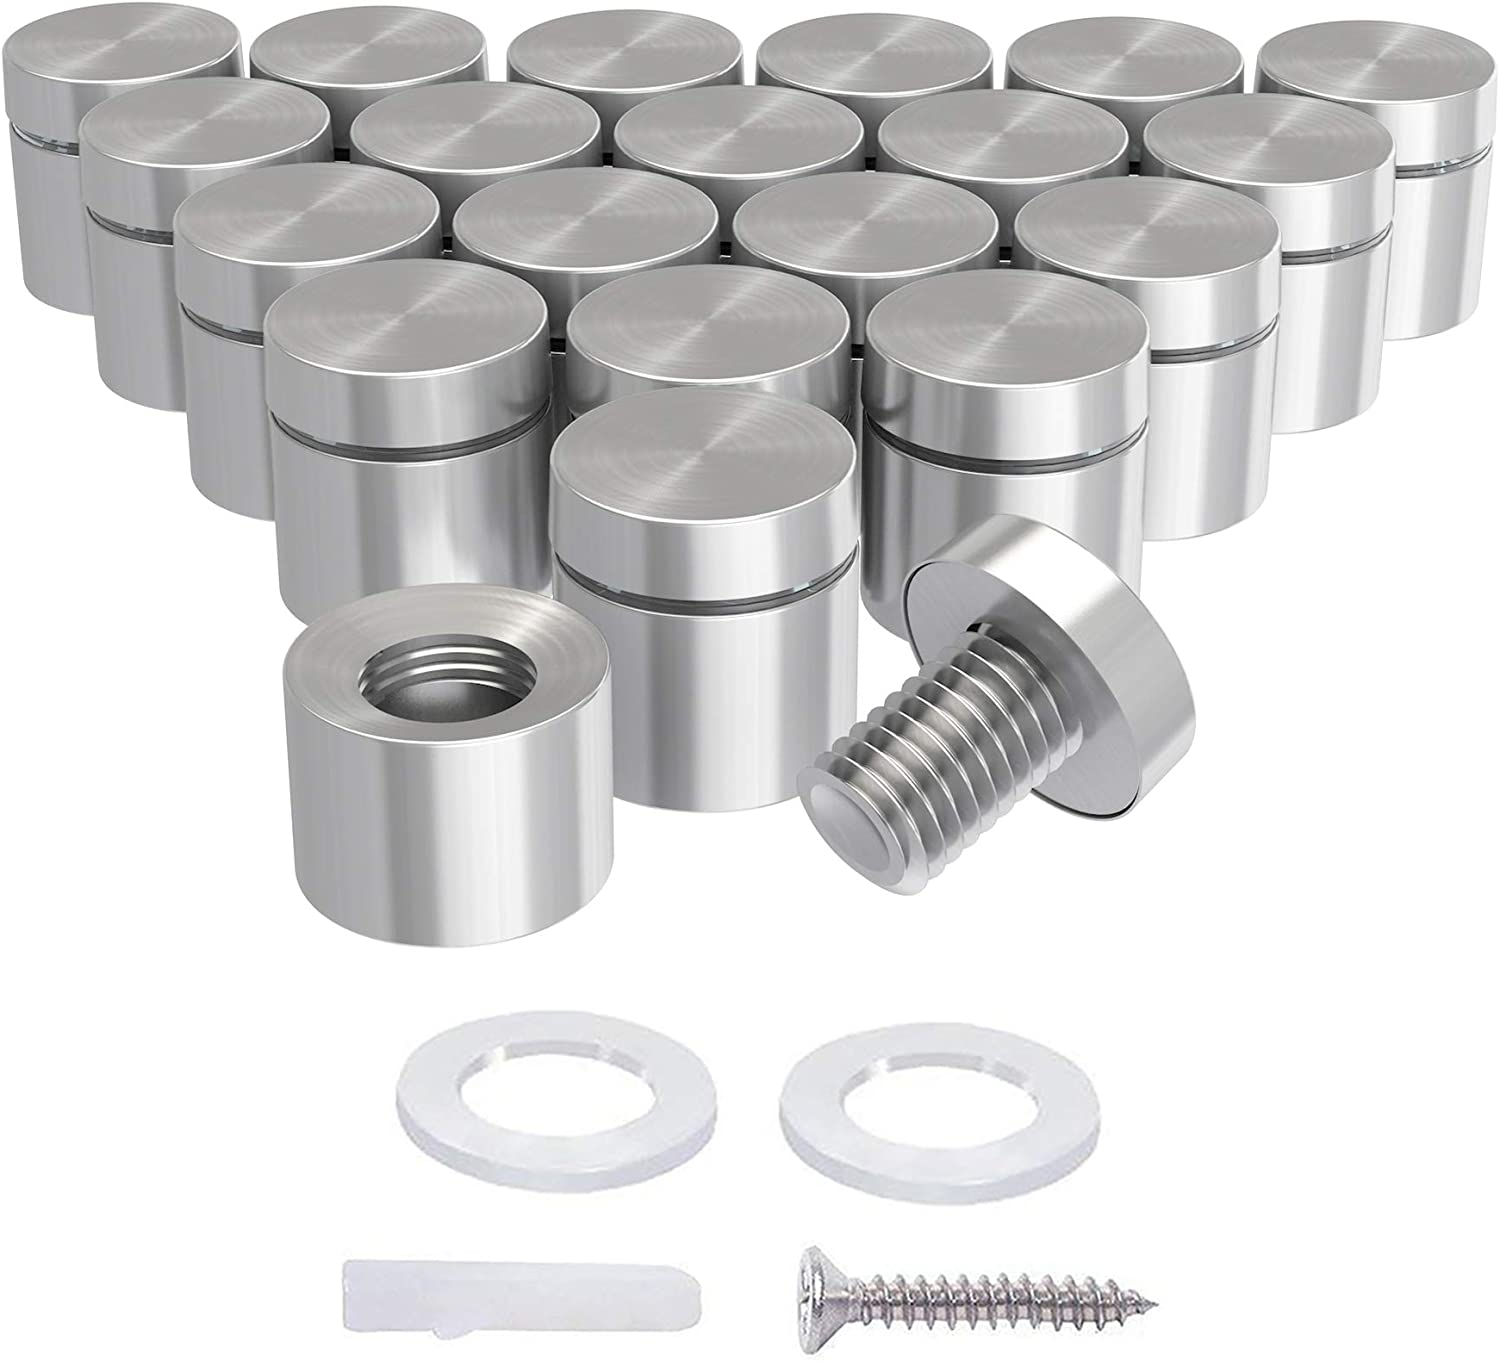 Standoffs for Glass Sign Stainless Steel Standoff Holder Mounts Hardware with Screws and Anchors 12 Pcs URBEST